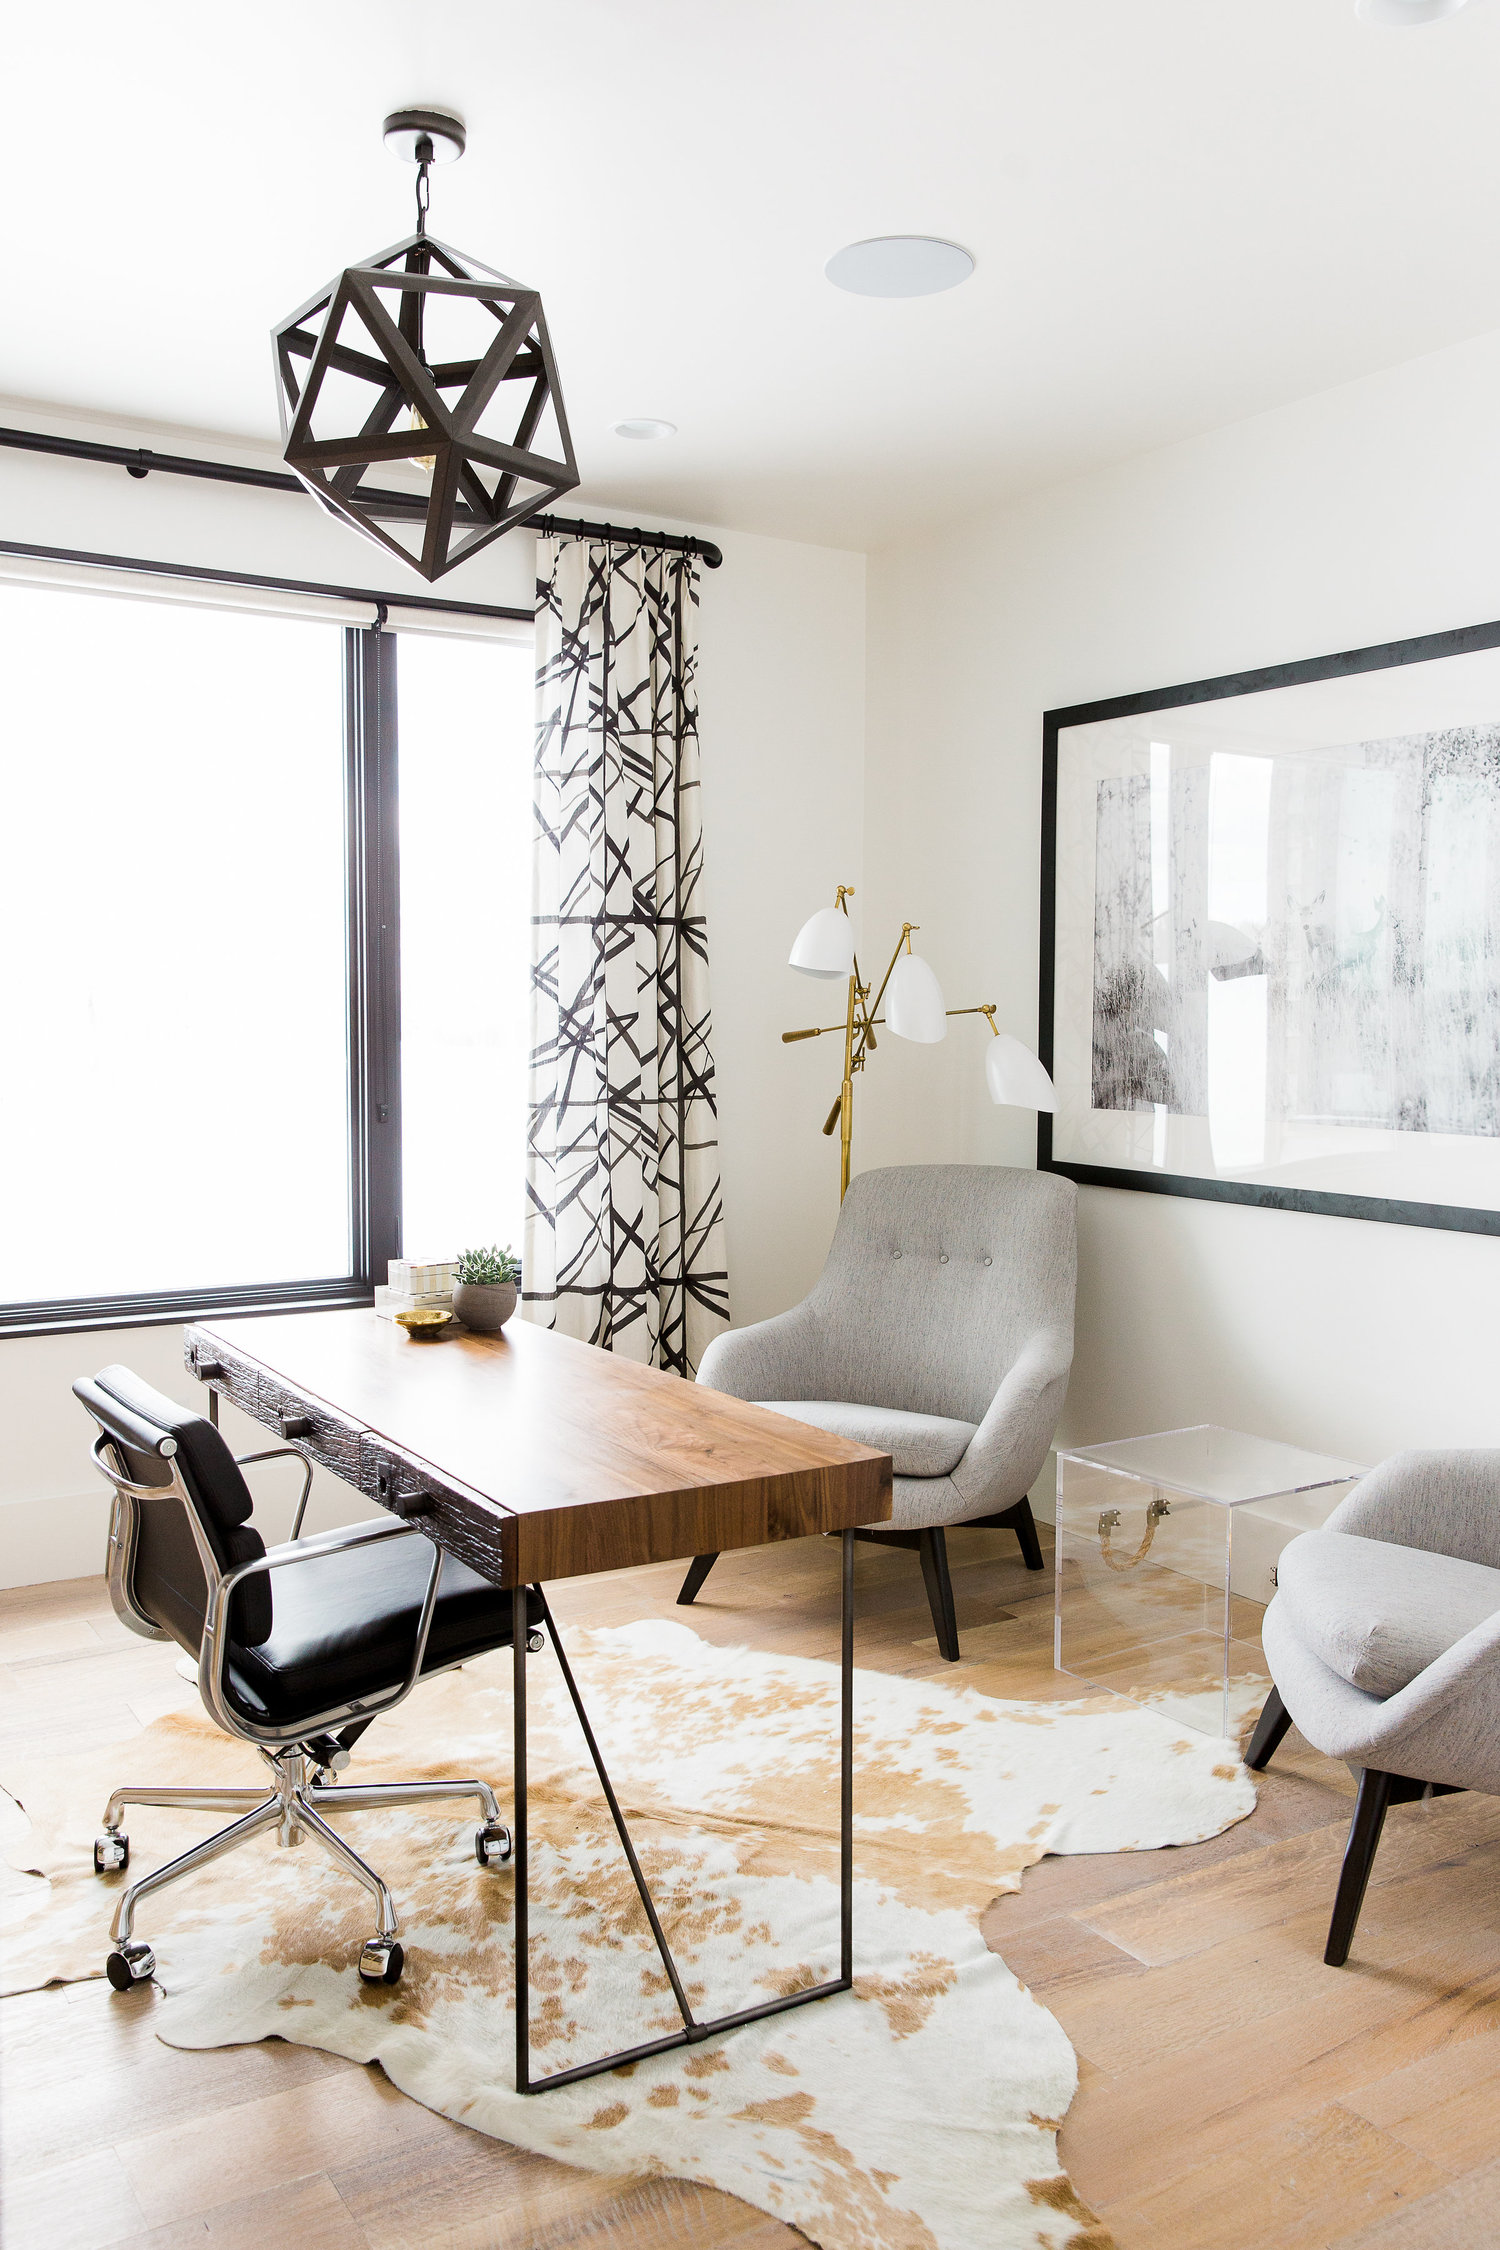 Minimalist wooden desk and chair in home office